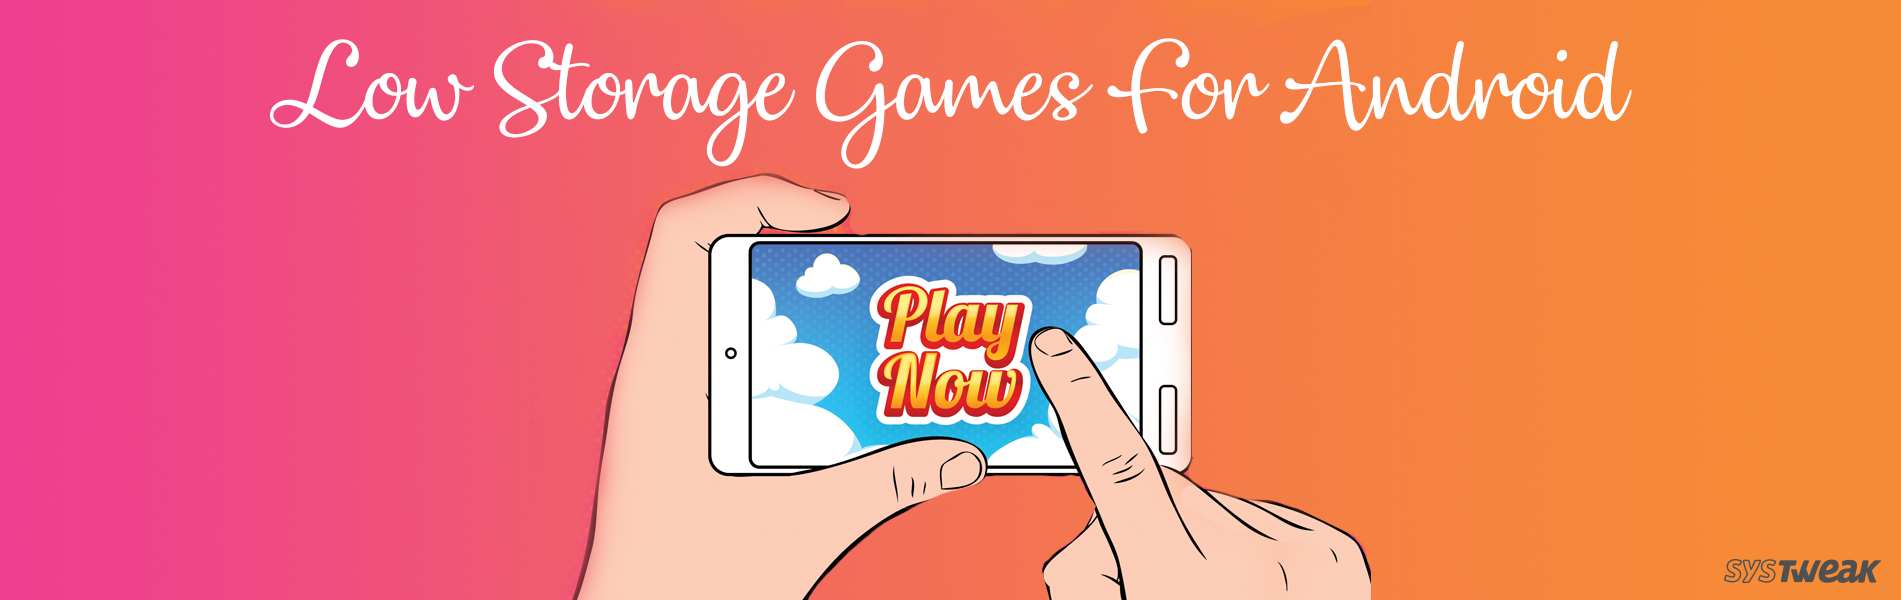 6 Good Games That Do Not Clog Your Android Storage